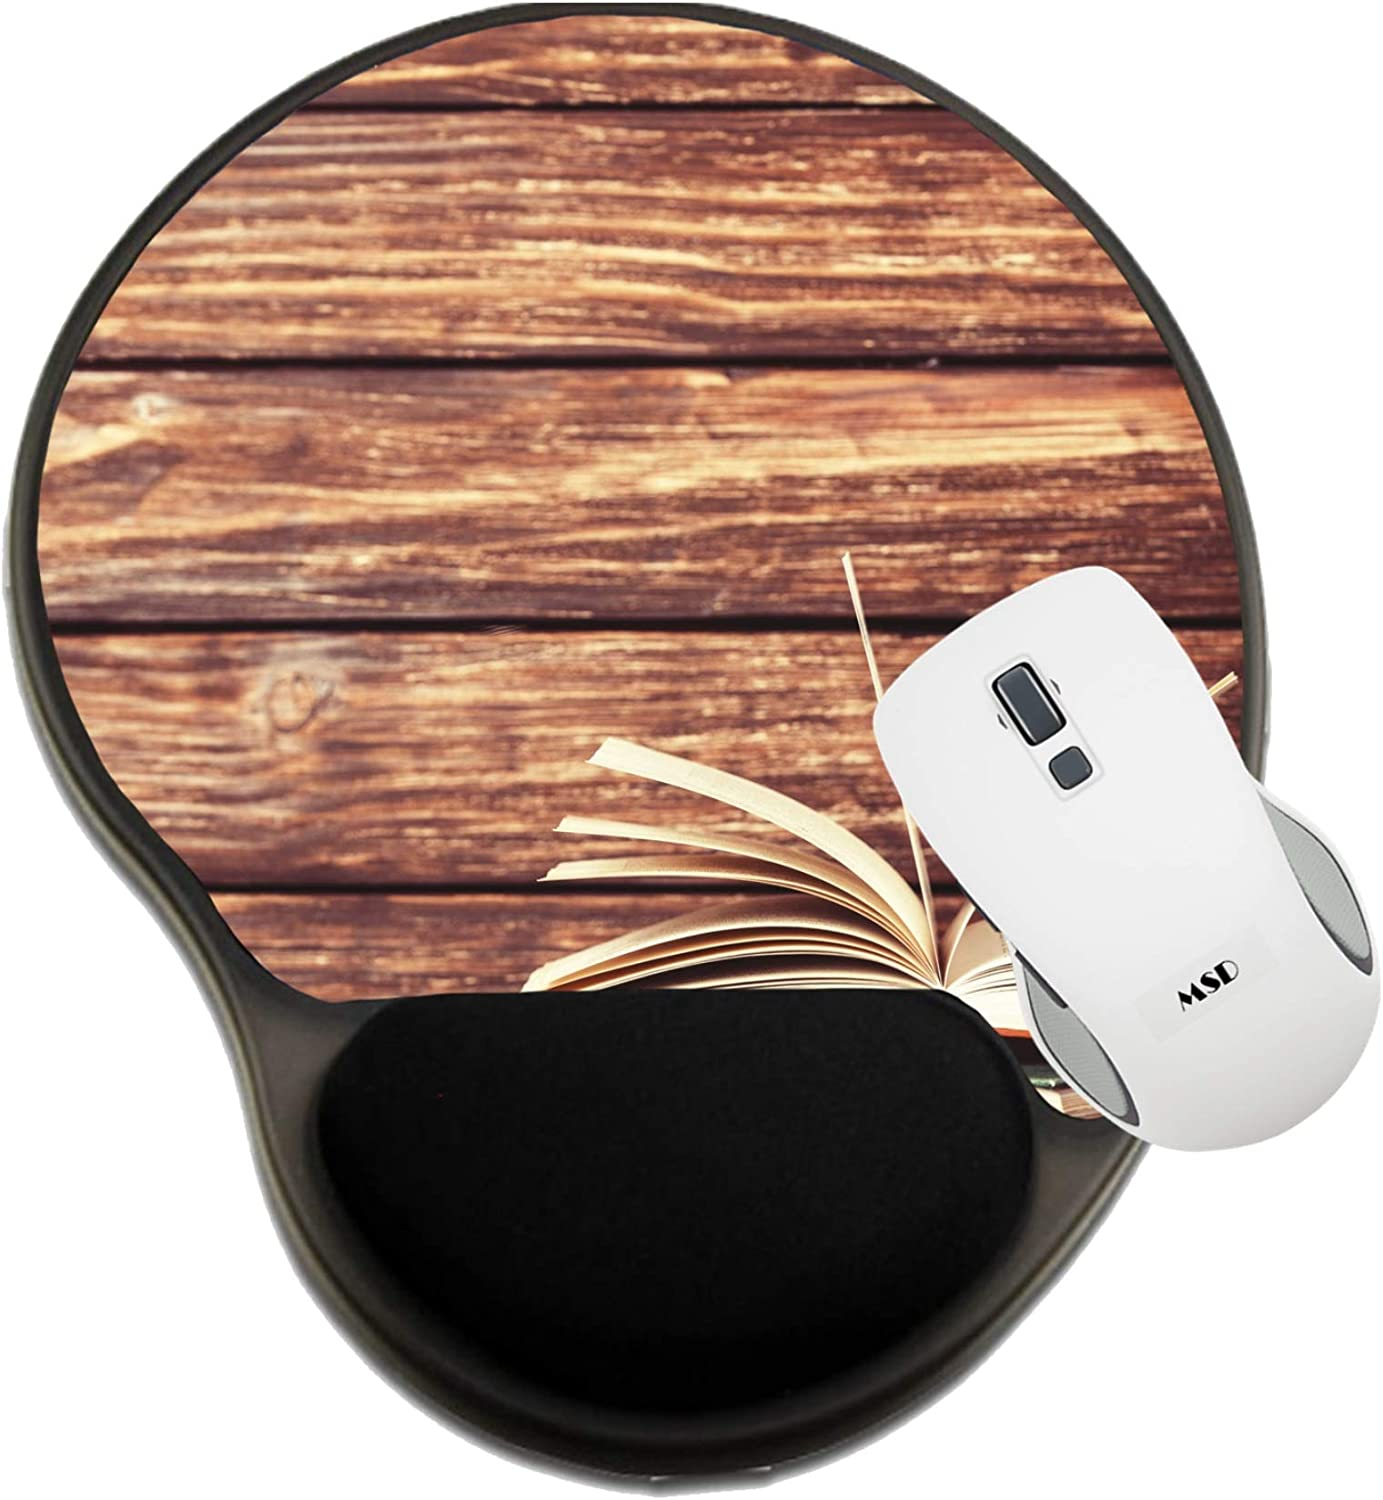 MSD Mousepad Wrist Rest Protected Mouse Pads Vintage Old Books on Wooden Table 29374971 Mat with Wrist Support